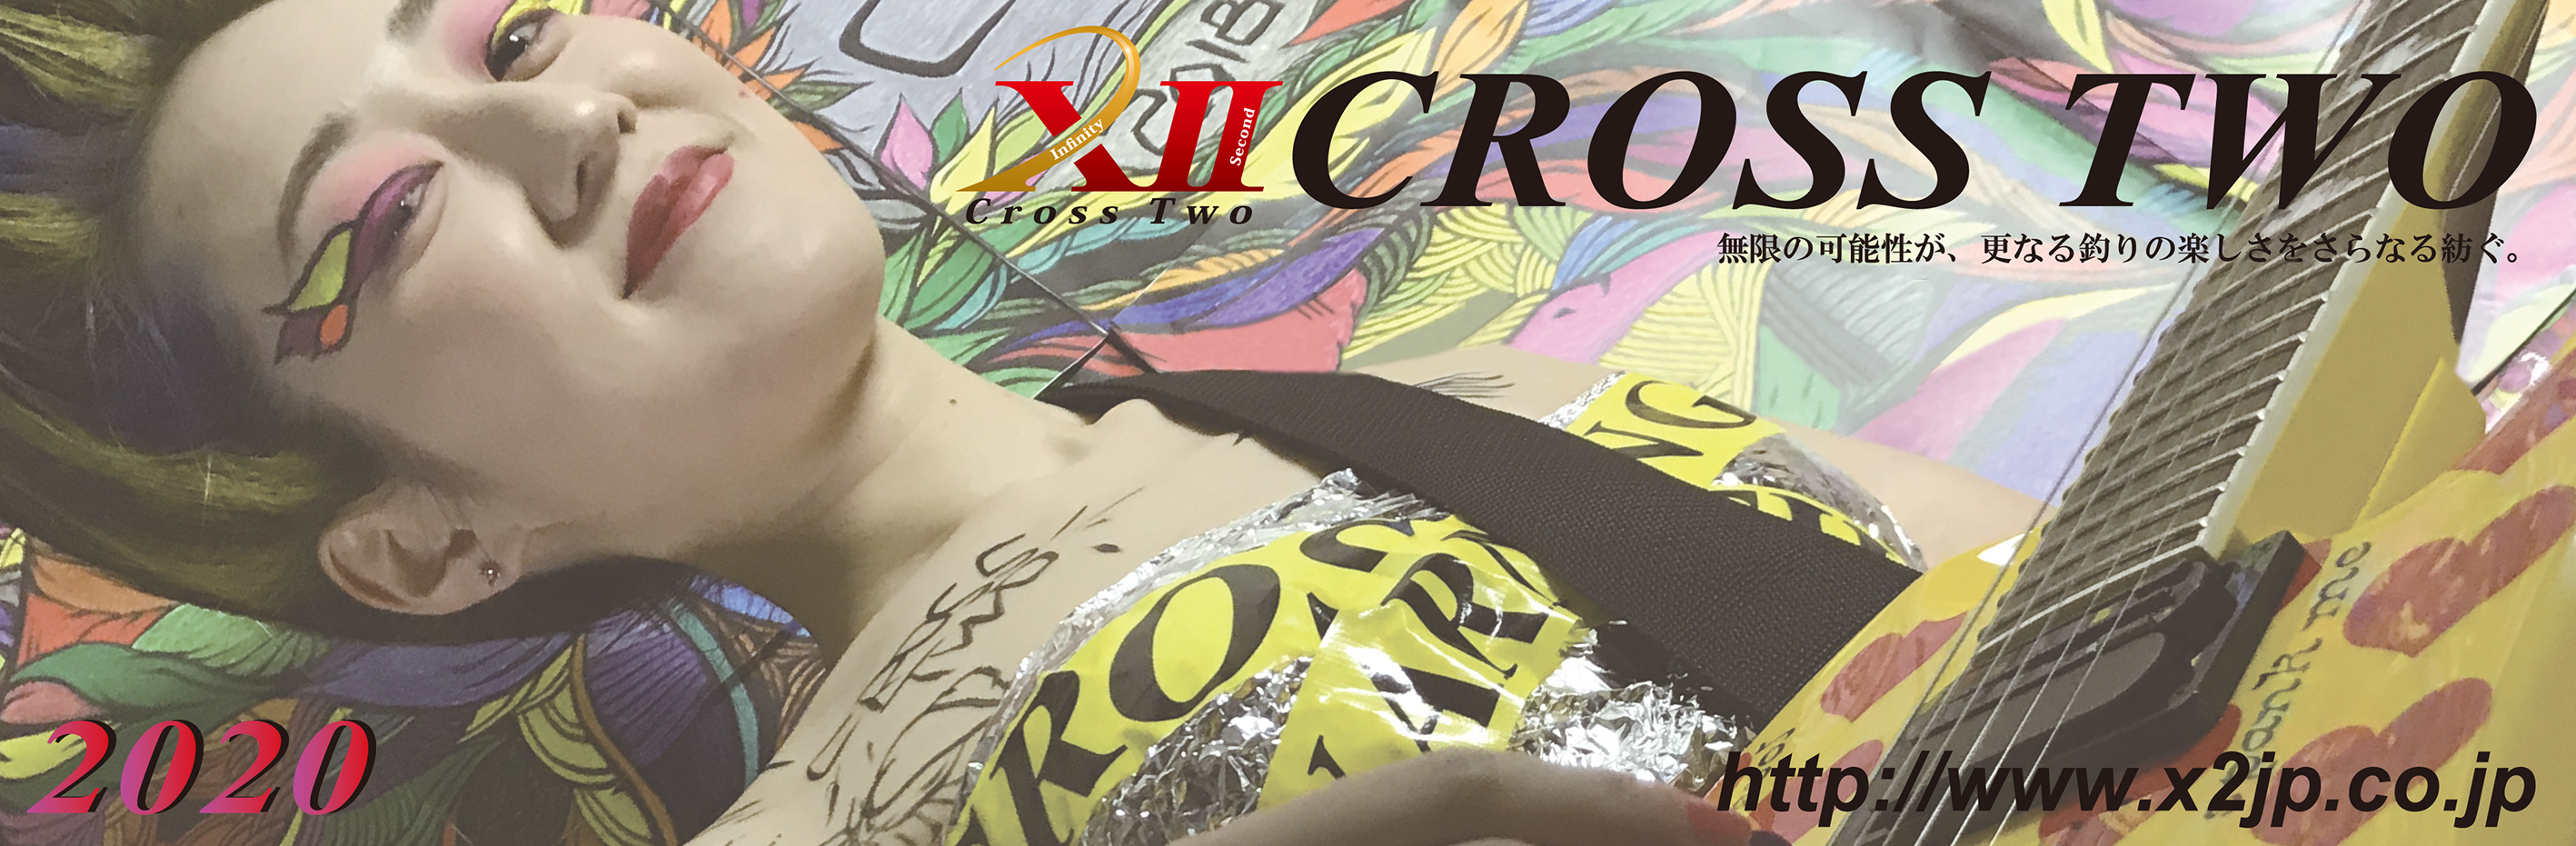 XII|Cross Two|クロスツー